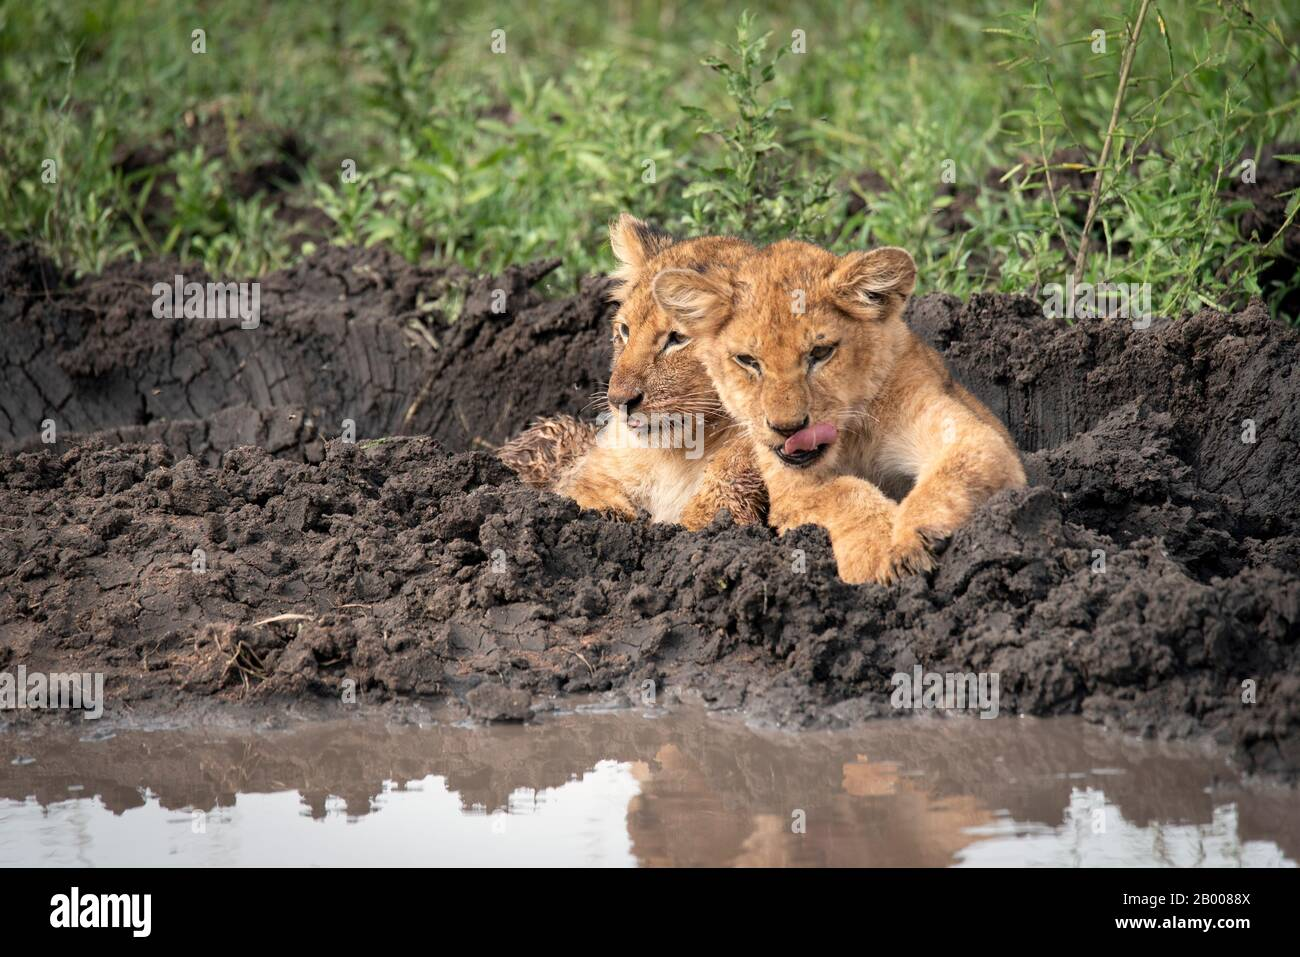 Lion cub friends with his little tongue sticking out Stock Photo